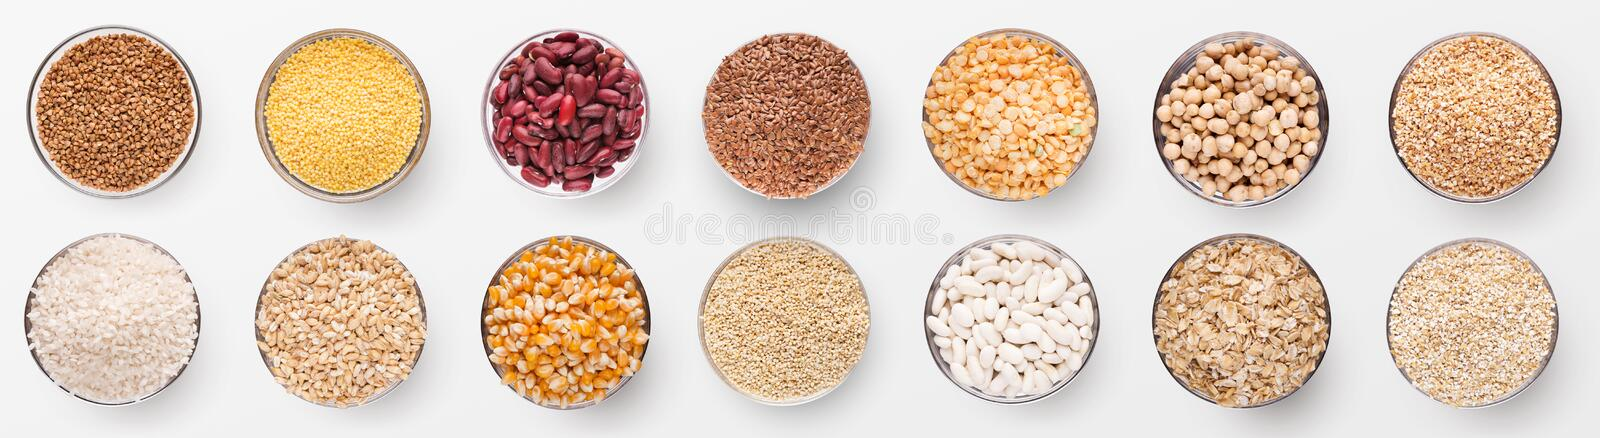 Collection of various grains in bowls isolated on white stock image